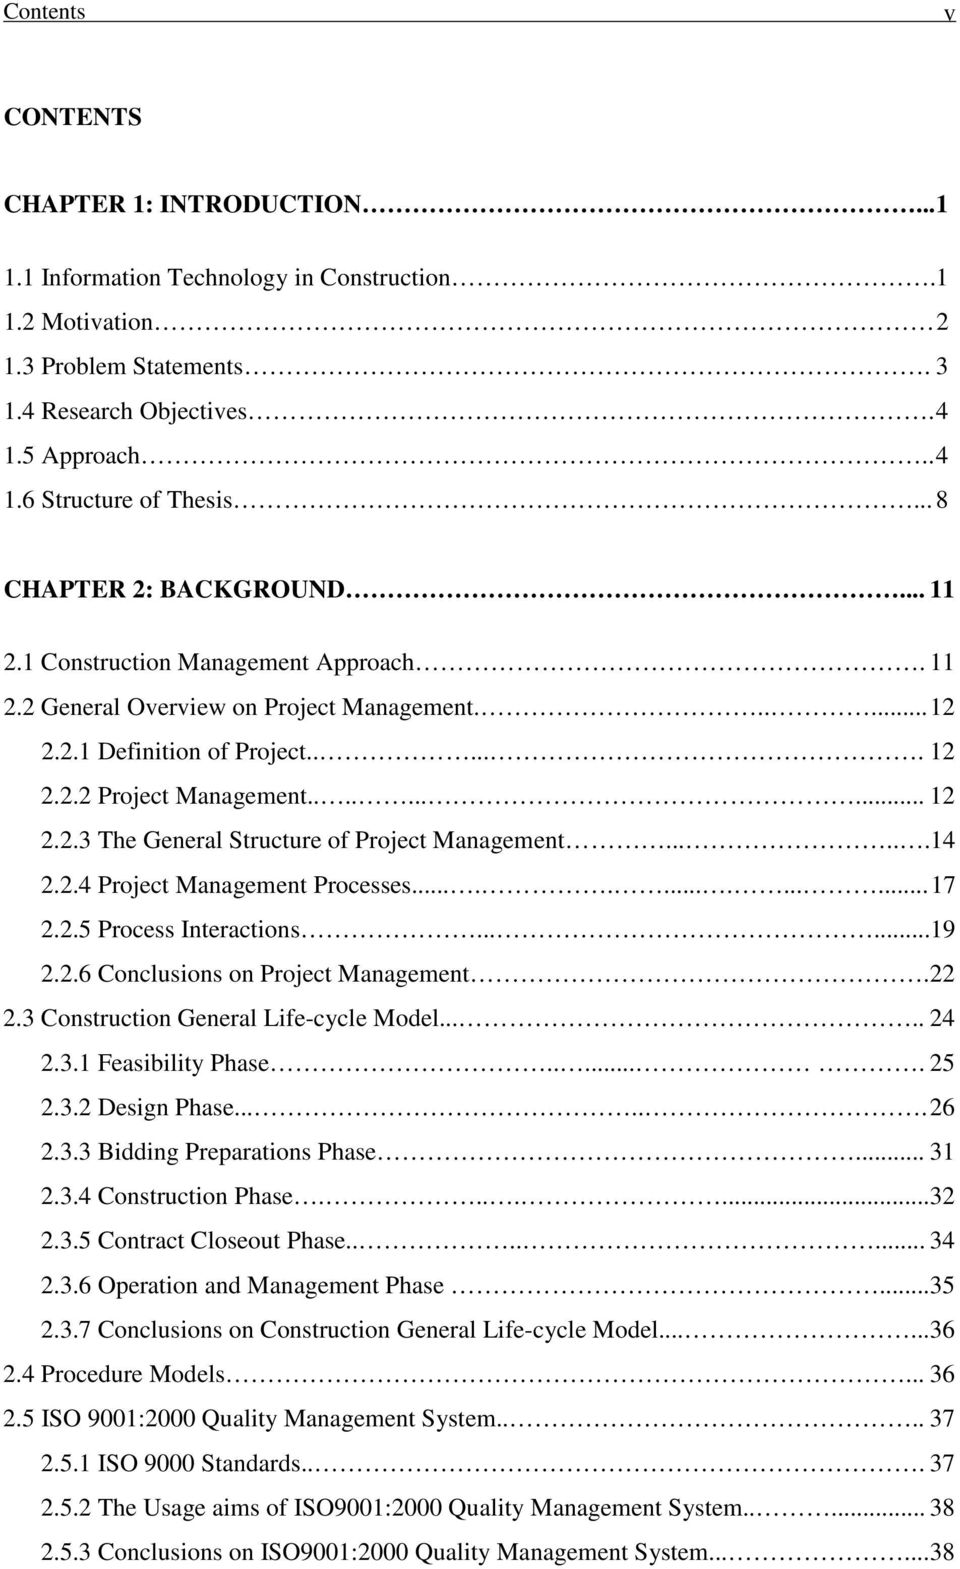 .....14 2.2.4 Project Management Processes............... 17 2.2.5 Process Interactions......19 2.2.6 Conclusions on Project Management.22 2.3 Construction General Life-cycle Model..... 24 2.3.1 Feasibility Phase.